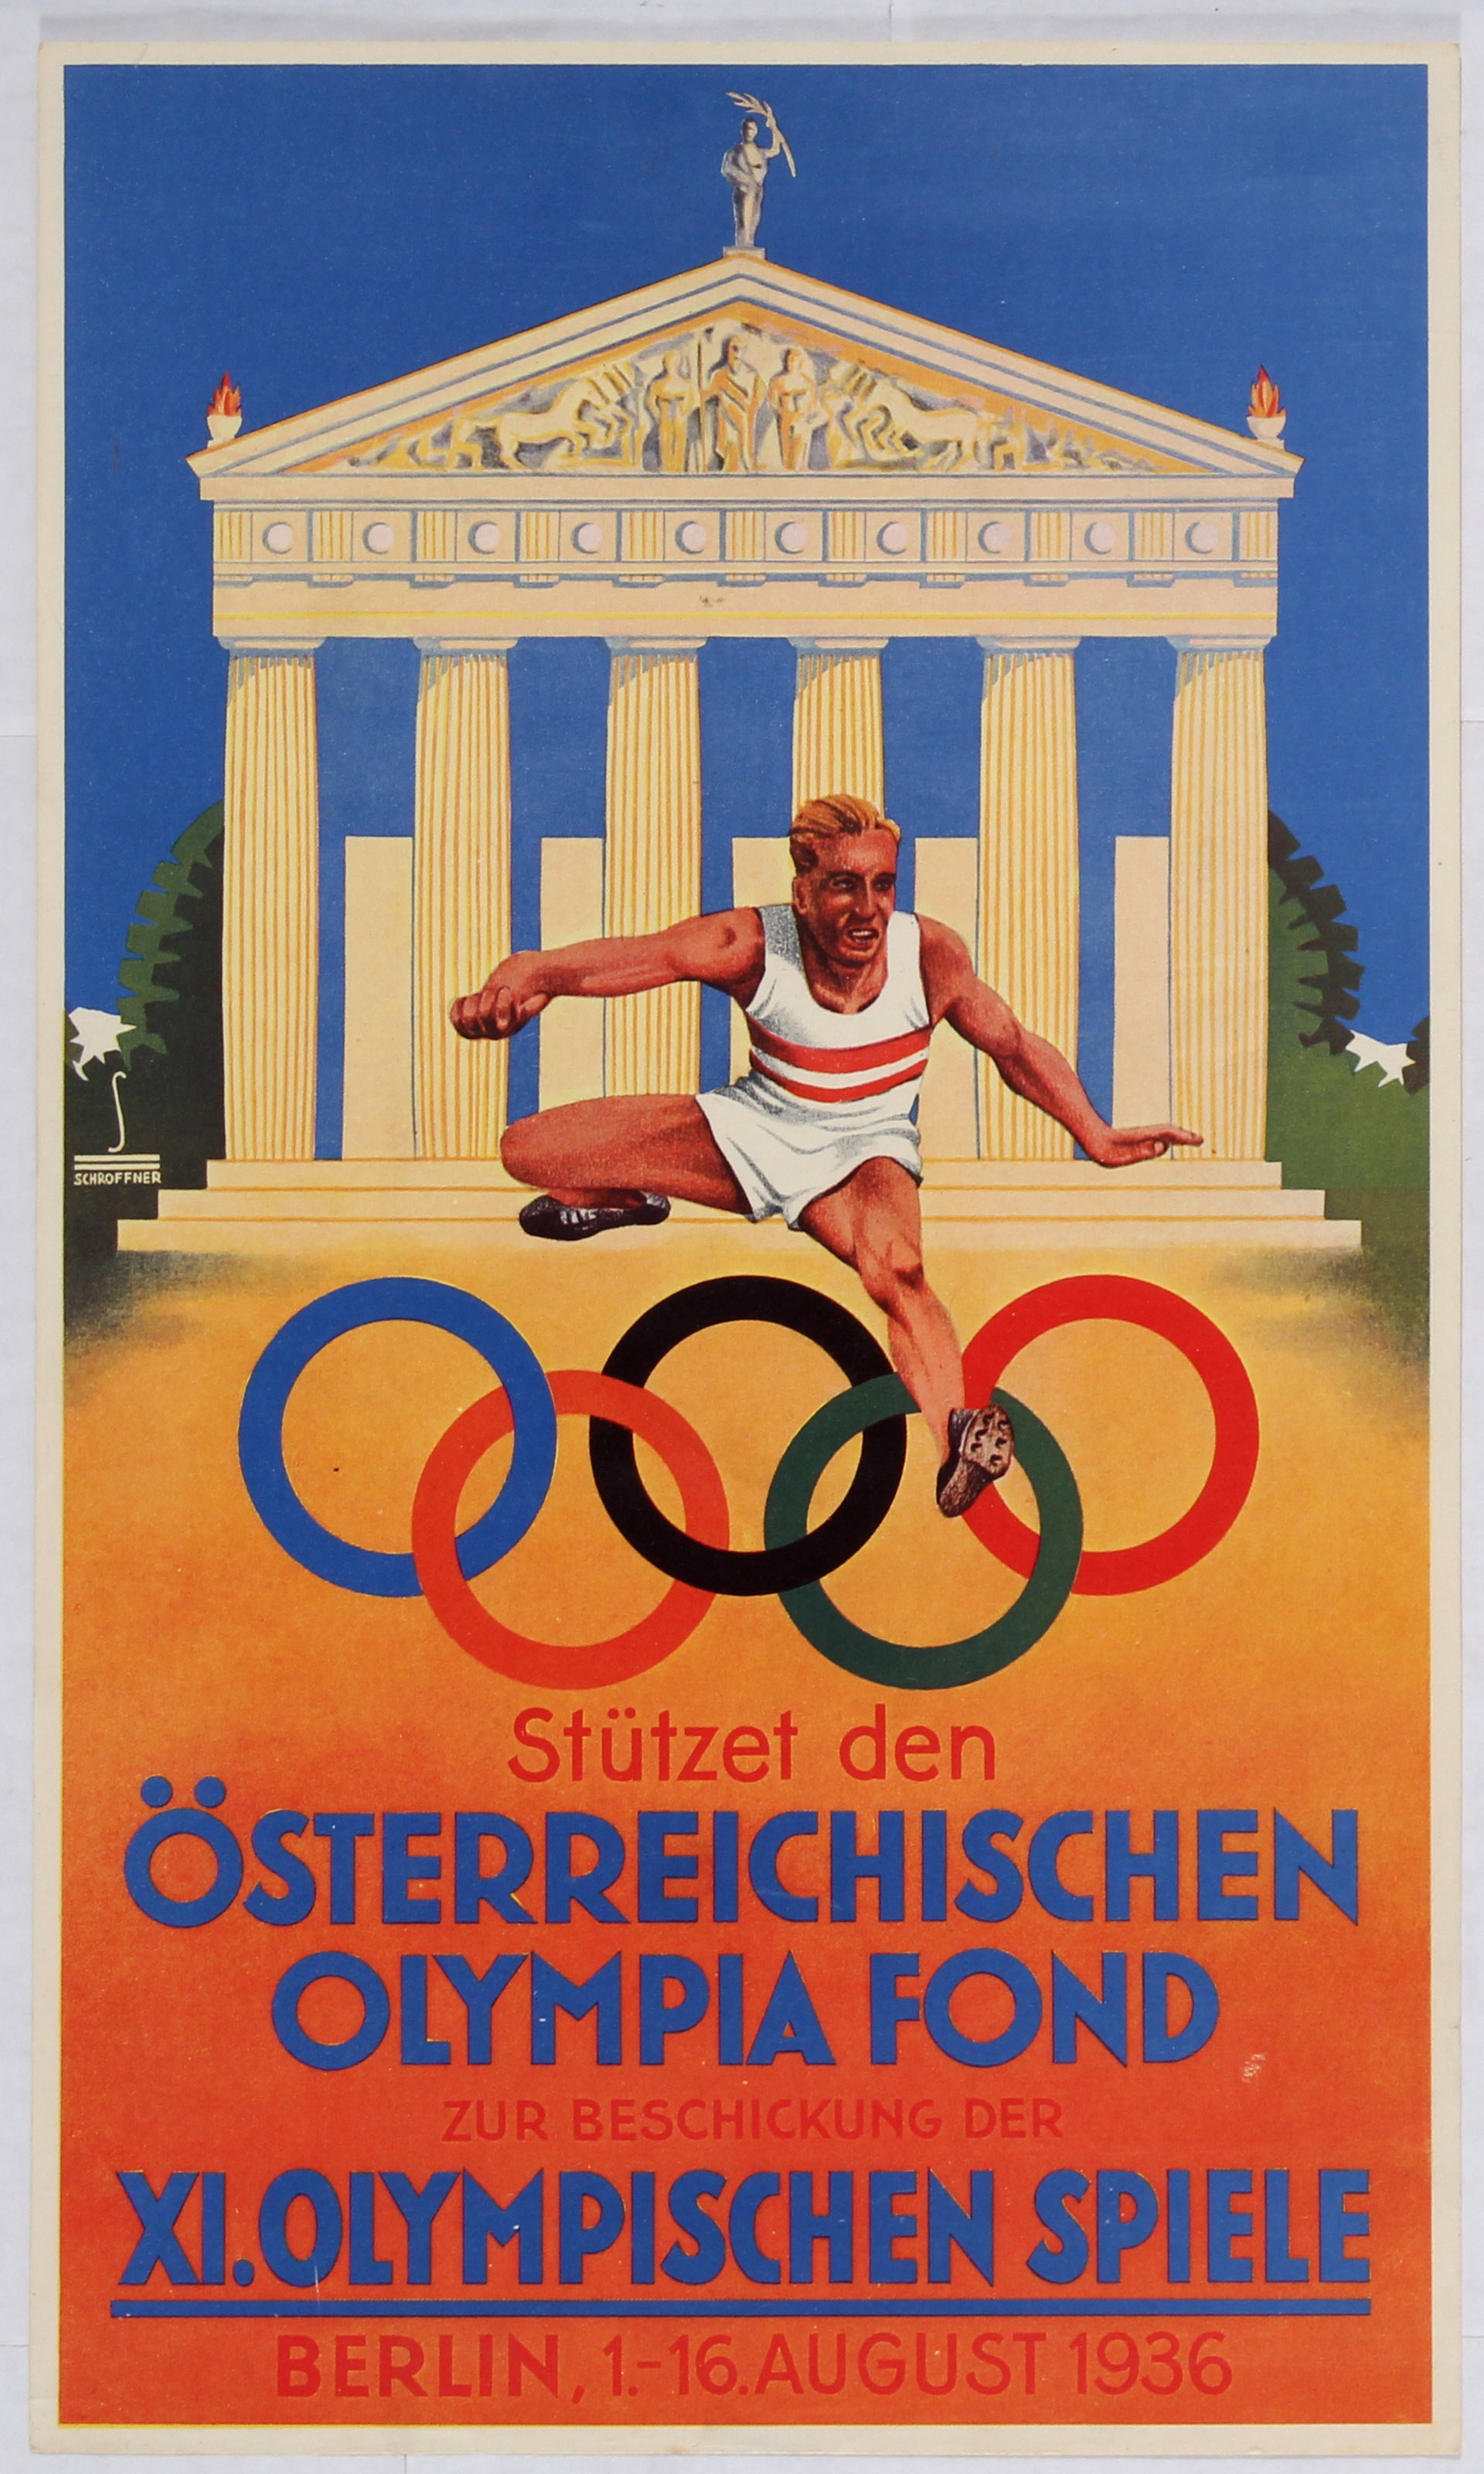 Lot 3300 - Sport Poster Olympic Games Fund Berlin 1936